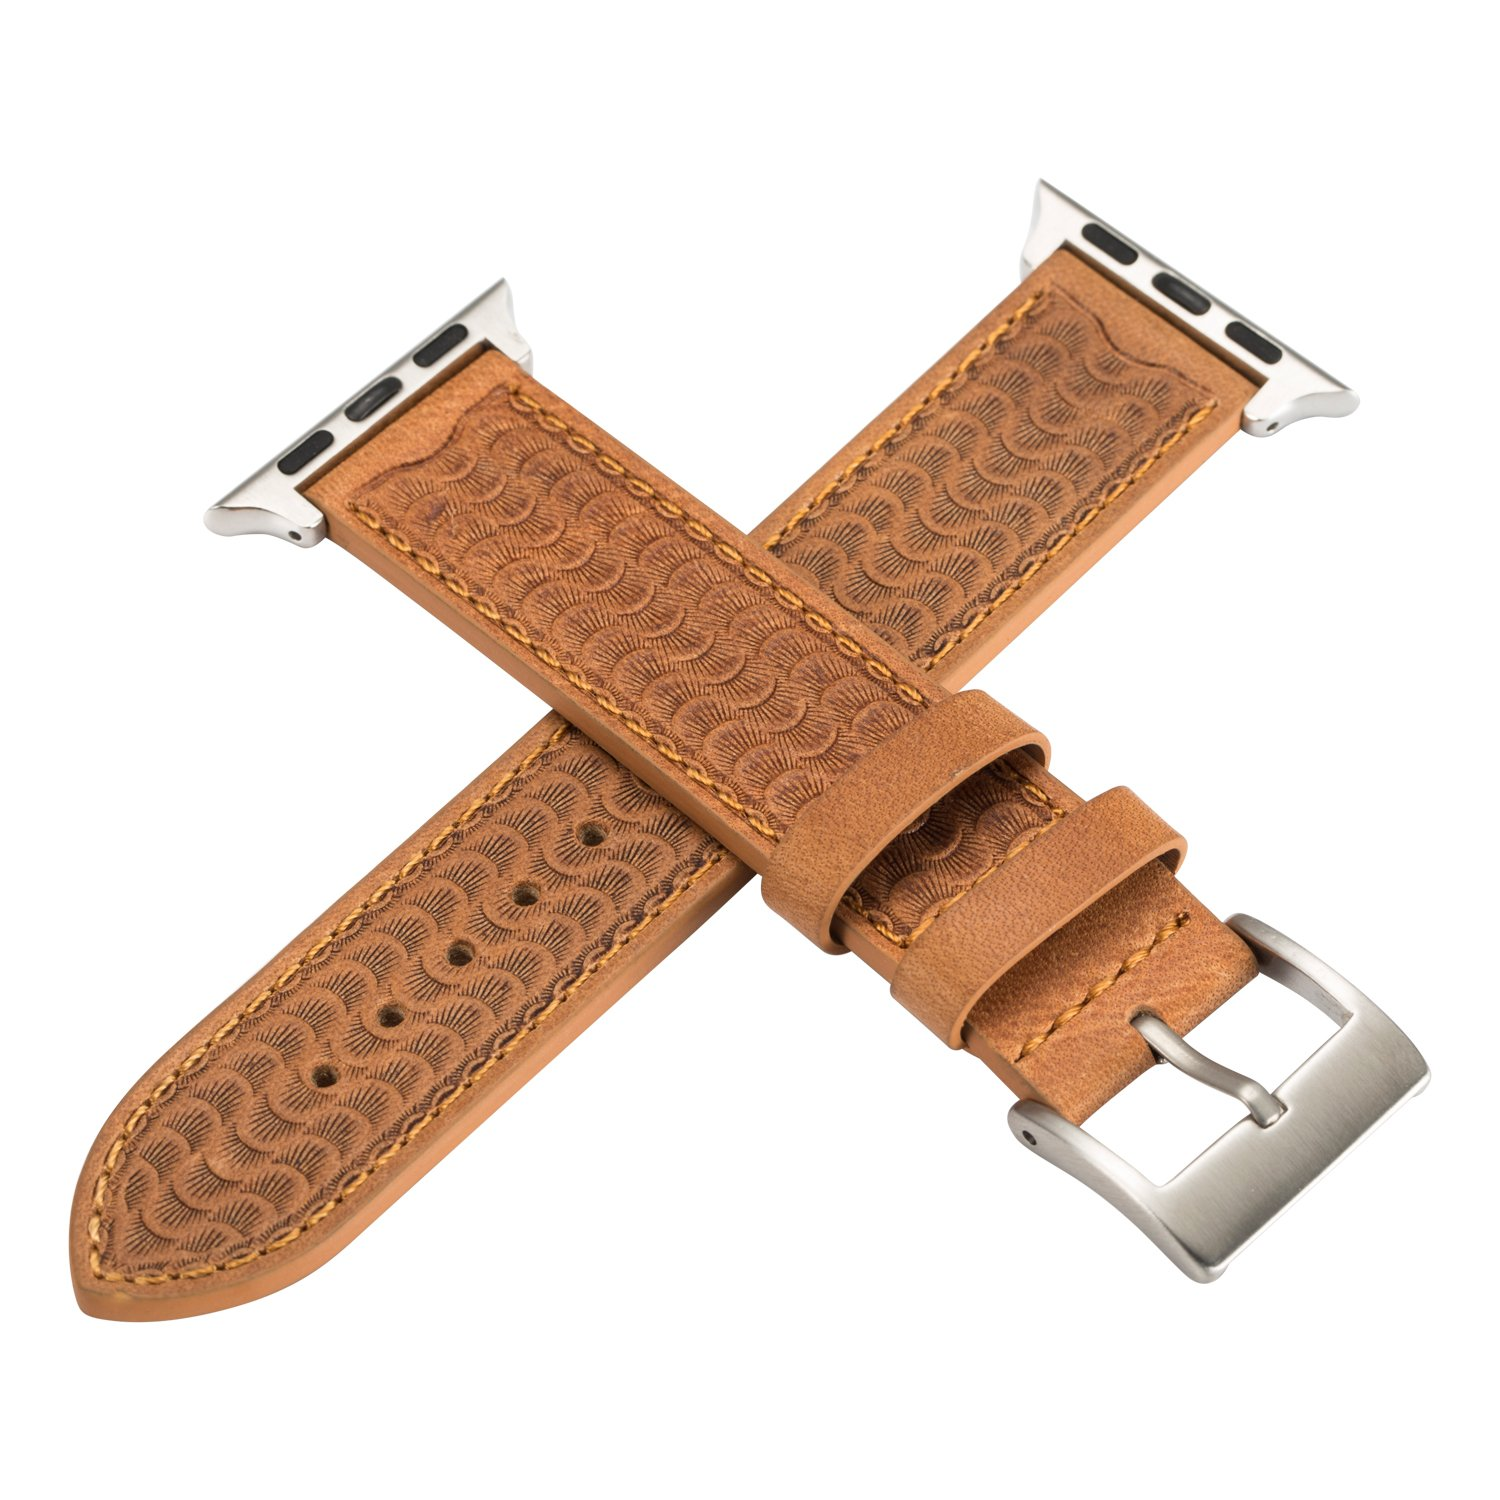 NUOYOU Apple Watch band 38mm for iWatch 38mm, Genuine Leather Relief iWatch Band Strap Stainless Metal Buckle for Apple Watch Series 3, Series 2, Series 1, Sport & Edition (Khaki,38mm)